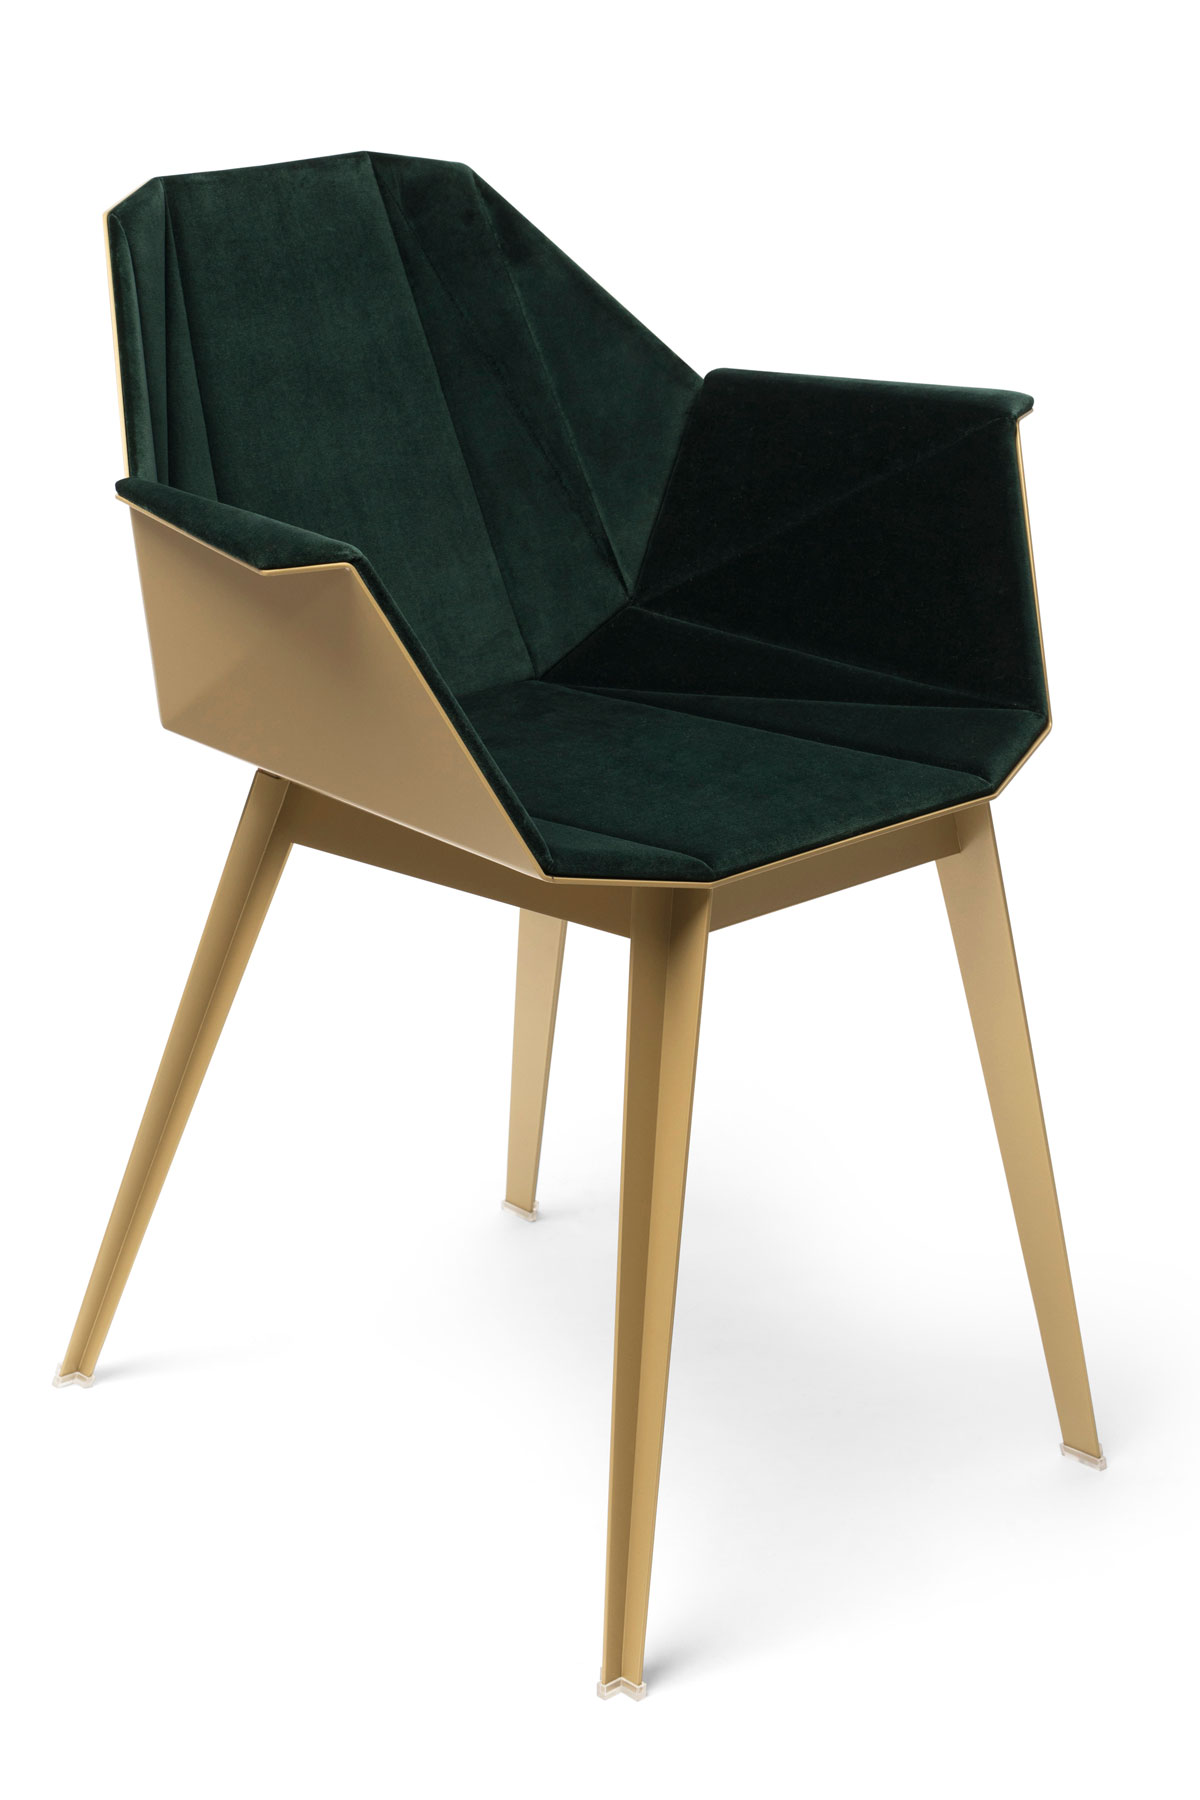 Alumni-Grace-gold-deep-green-upholstered_side-angle.jpg